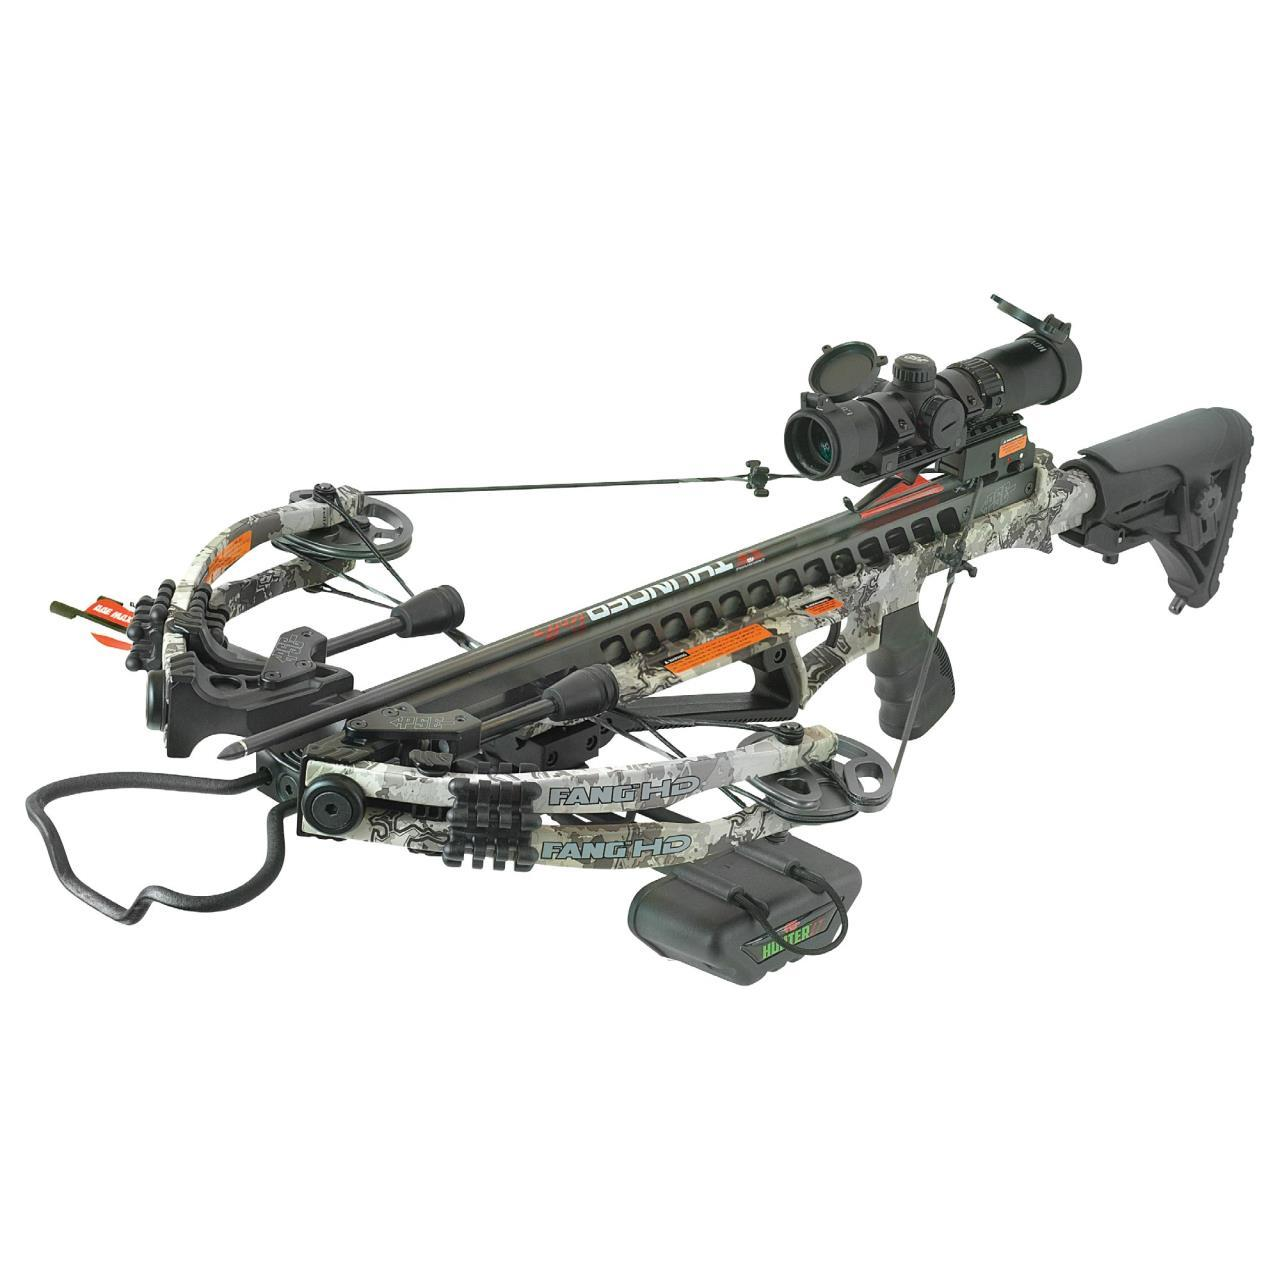 PSE CROSSBOW KIT FANG HD 400FPS TRU TIMBER VIPER